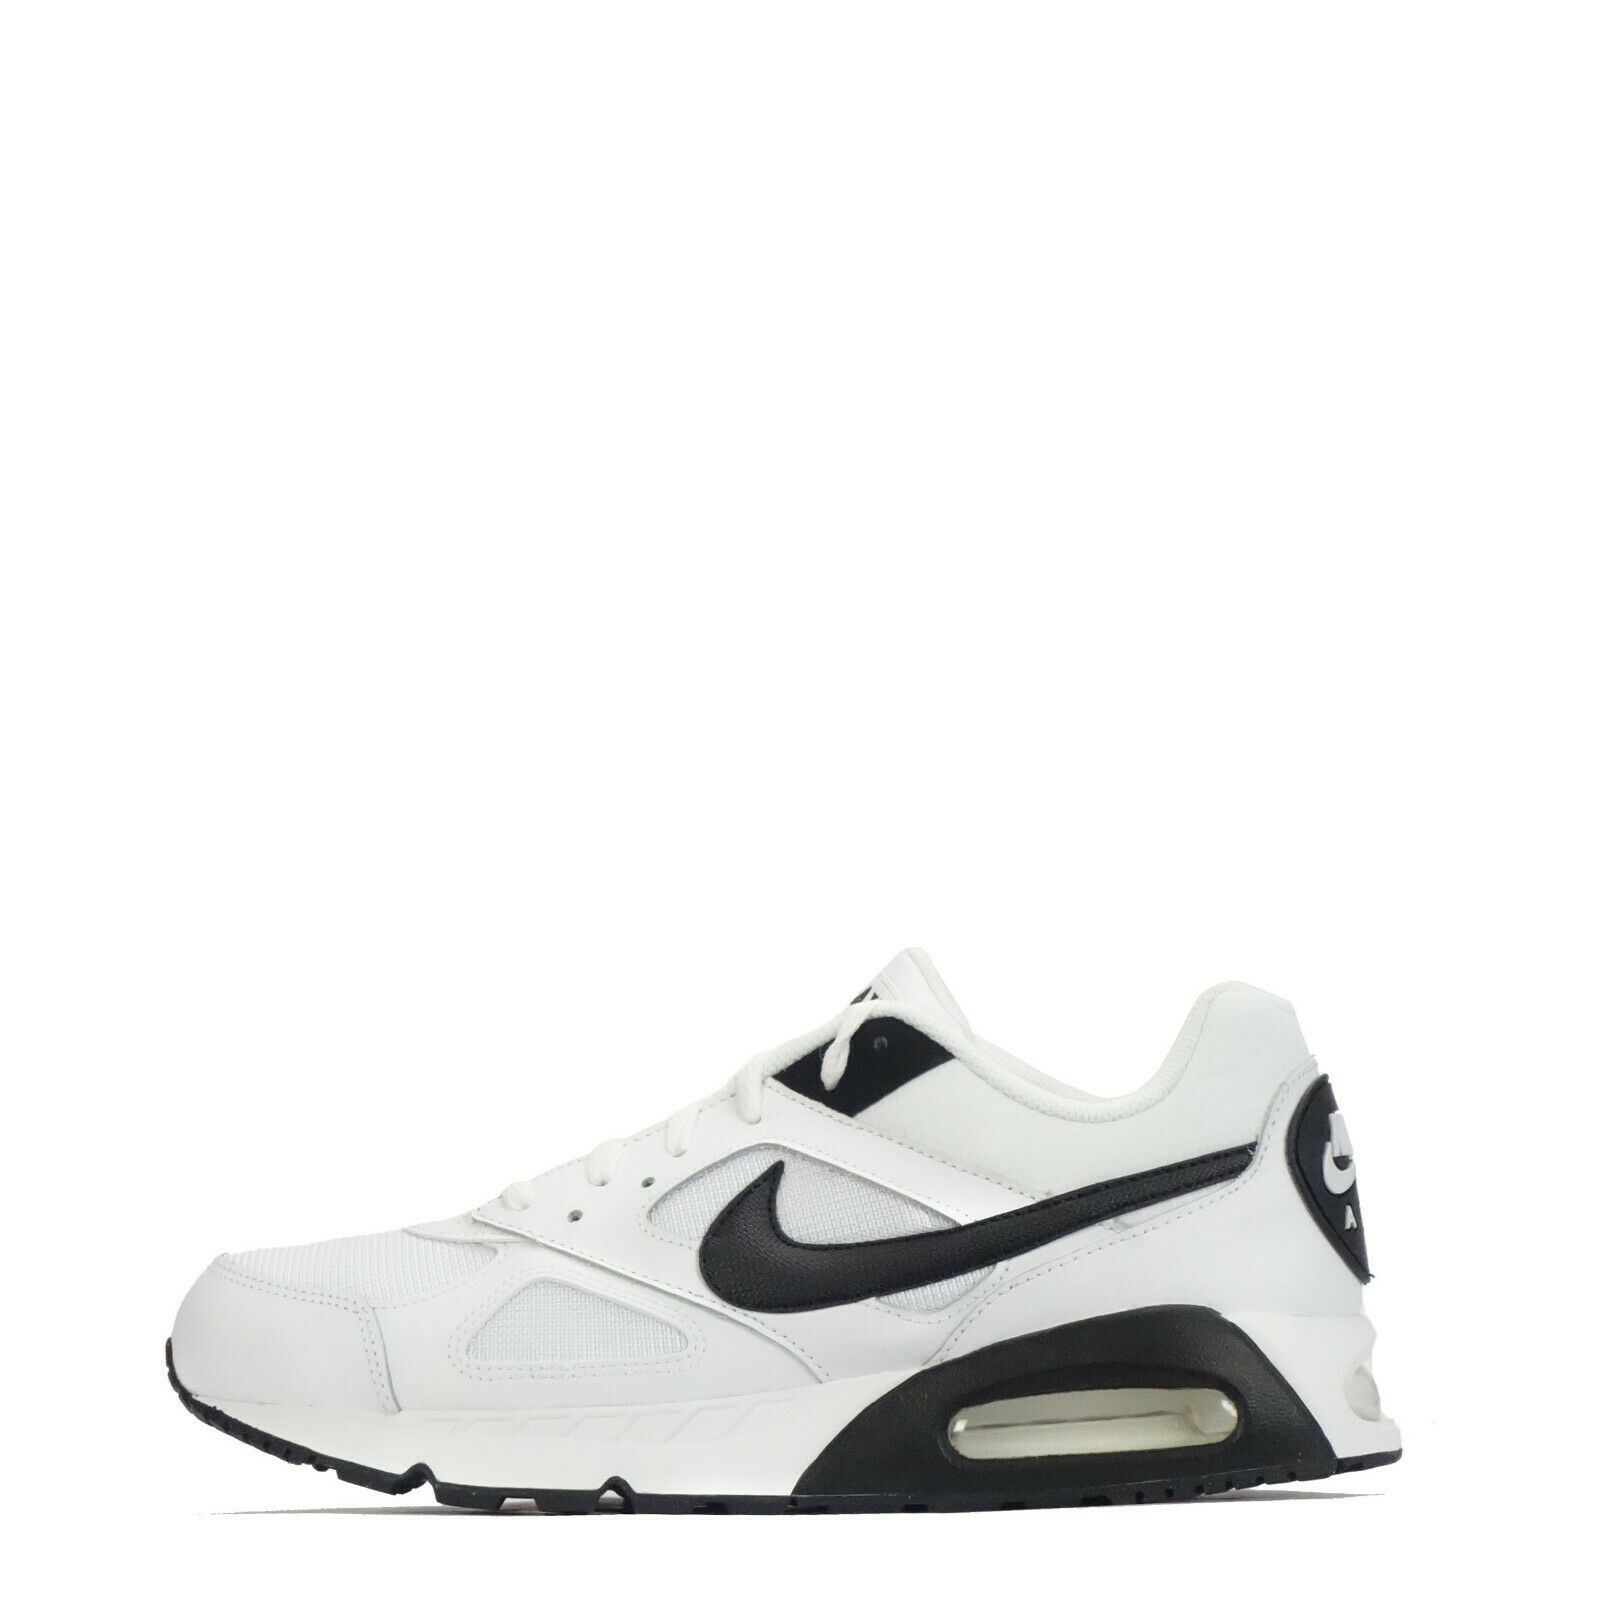 Nike Air Max IVO Men's Trainers White Black